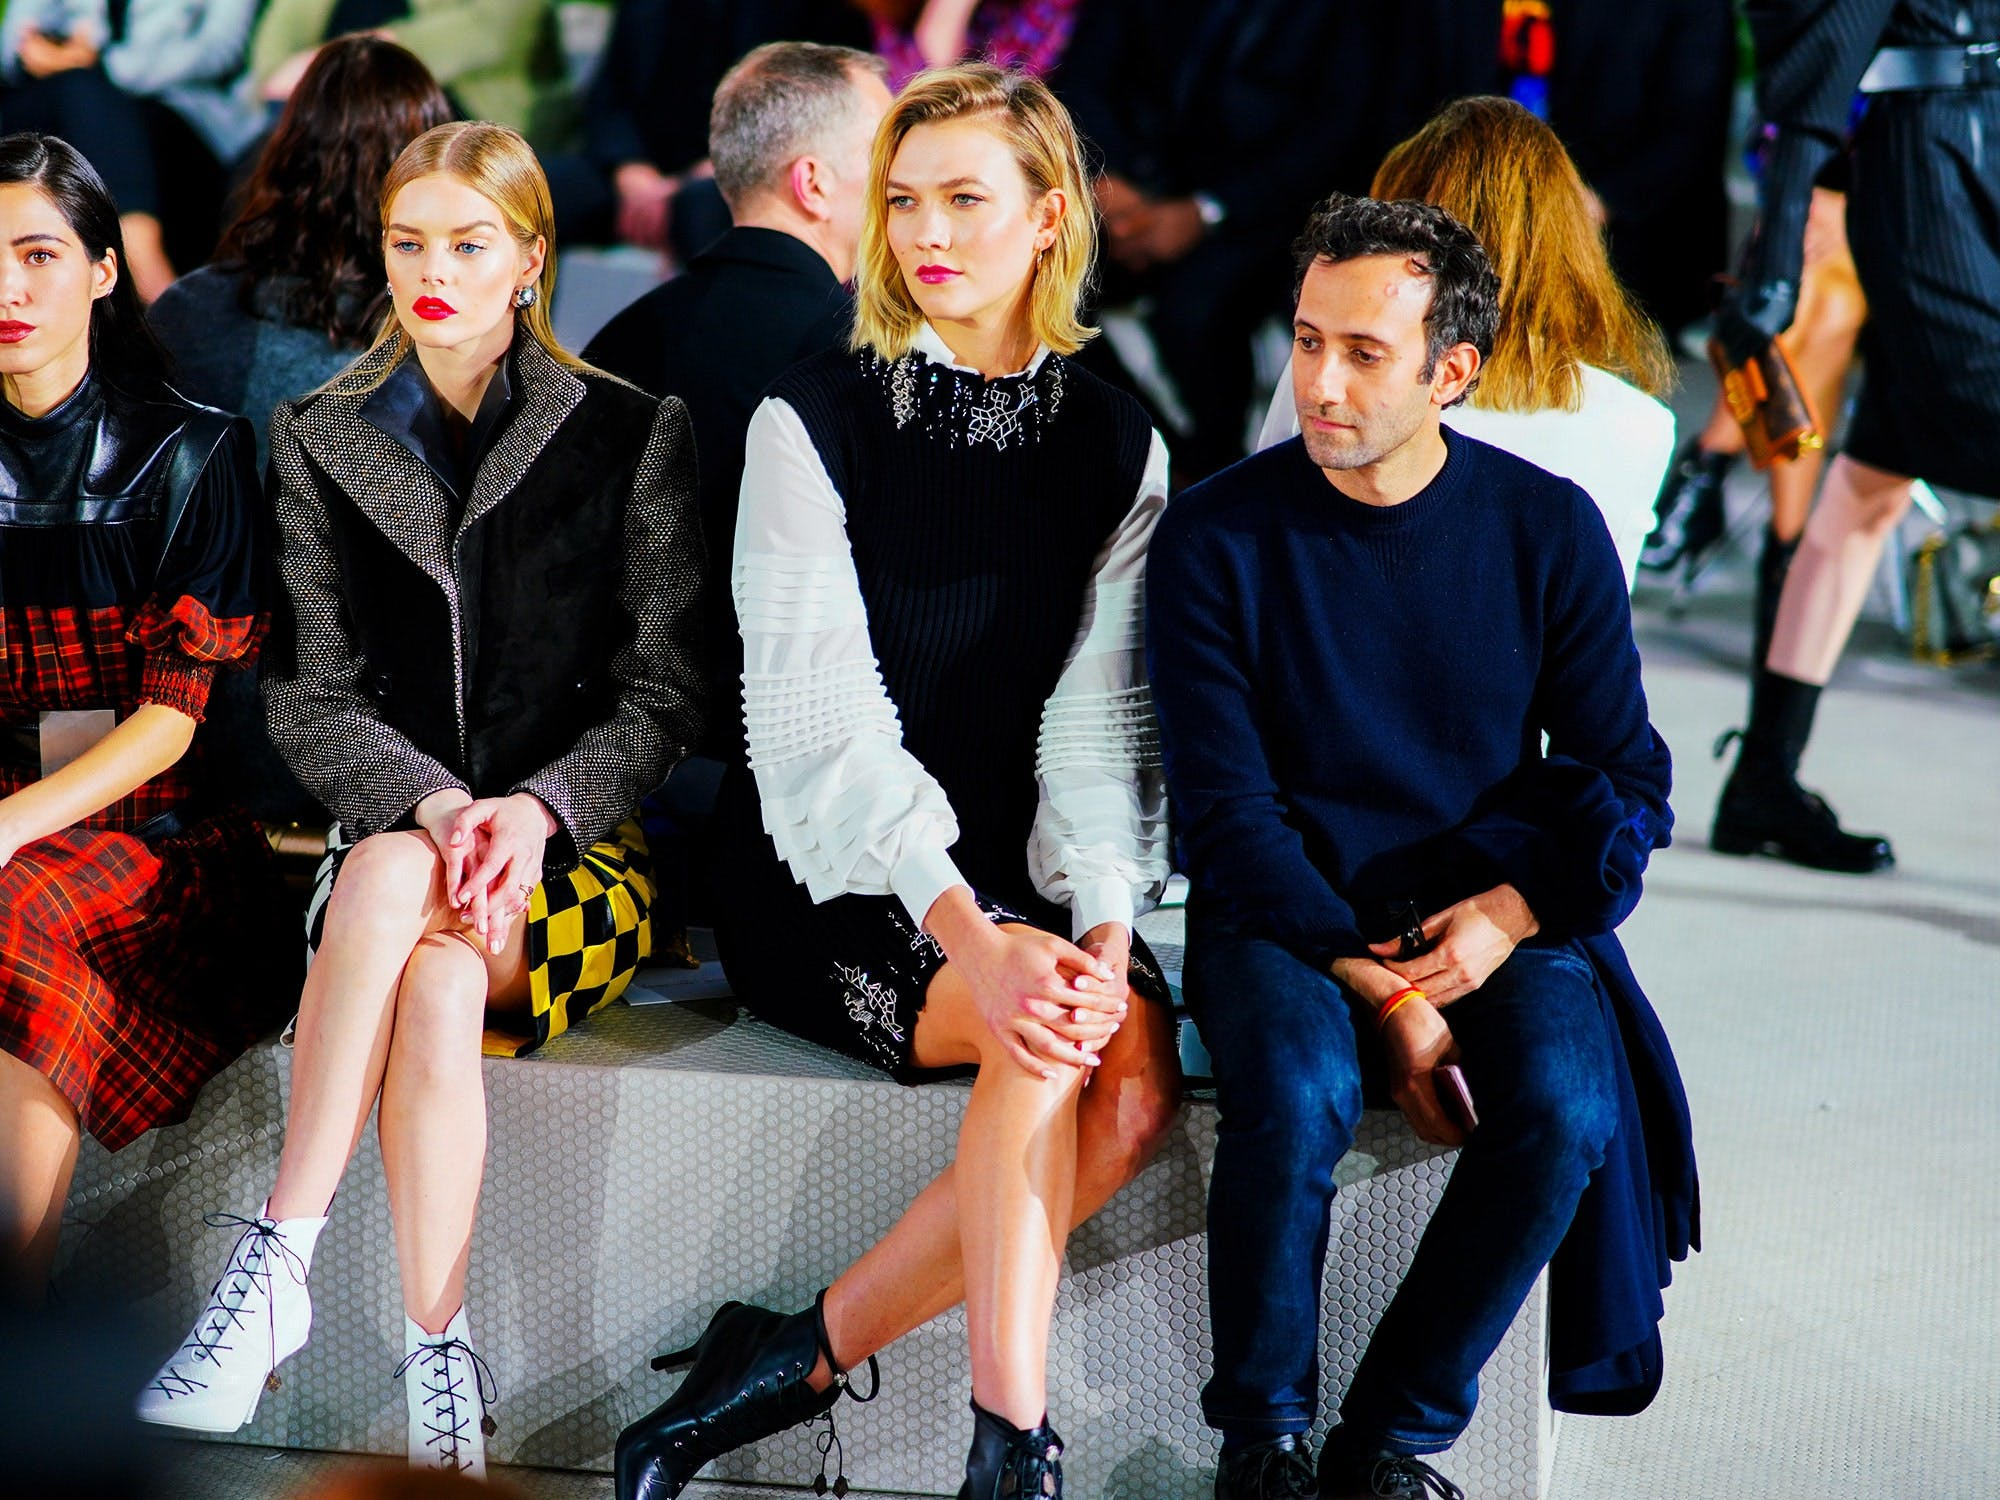 Karlie Kloss Sitting Front Row At A Fashion Show